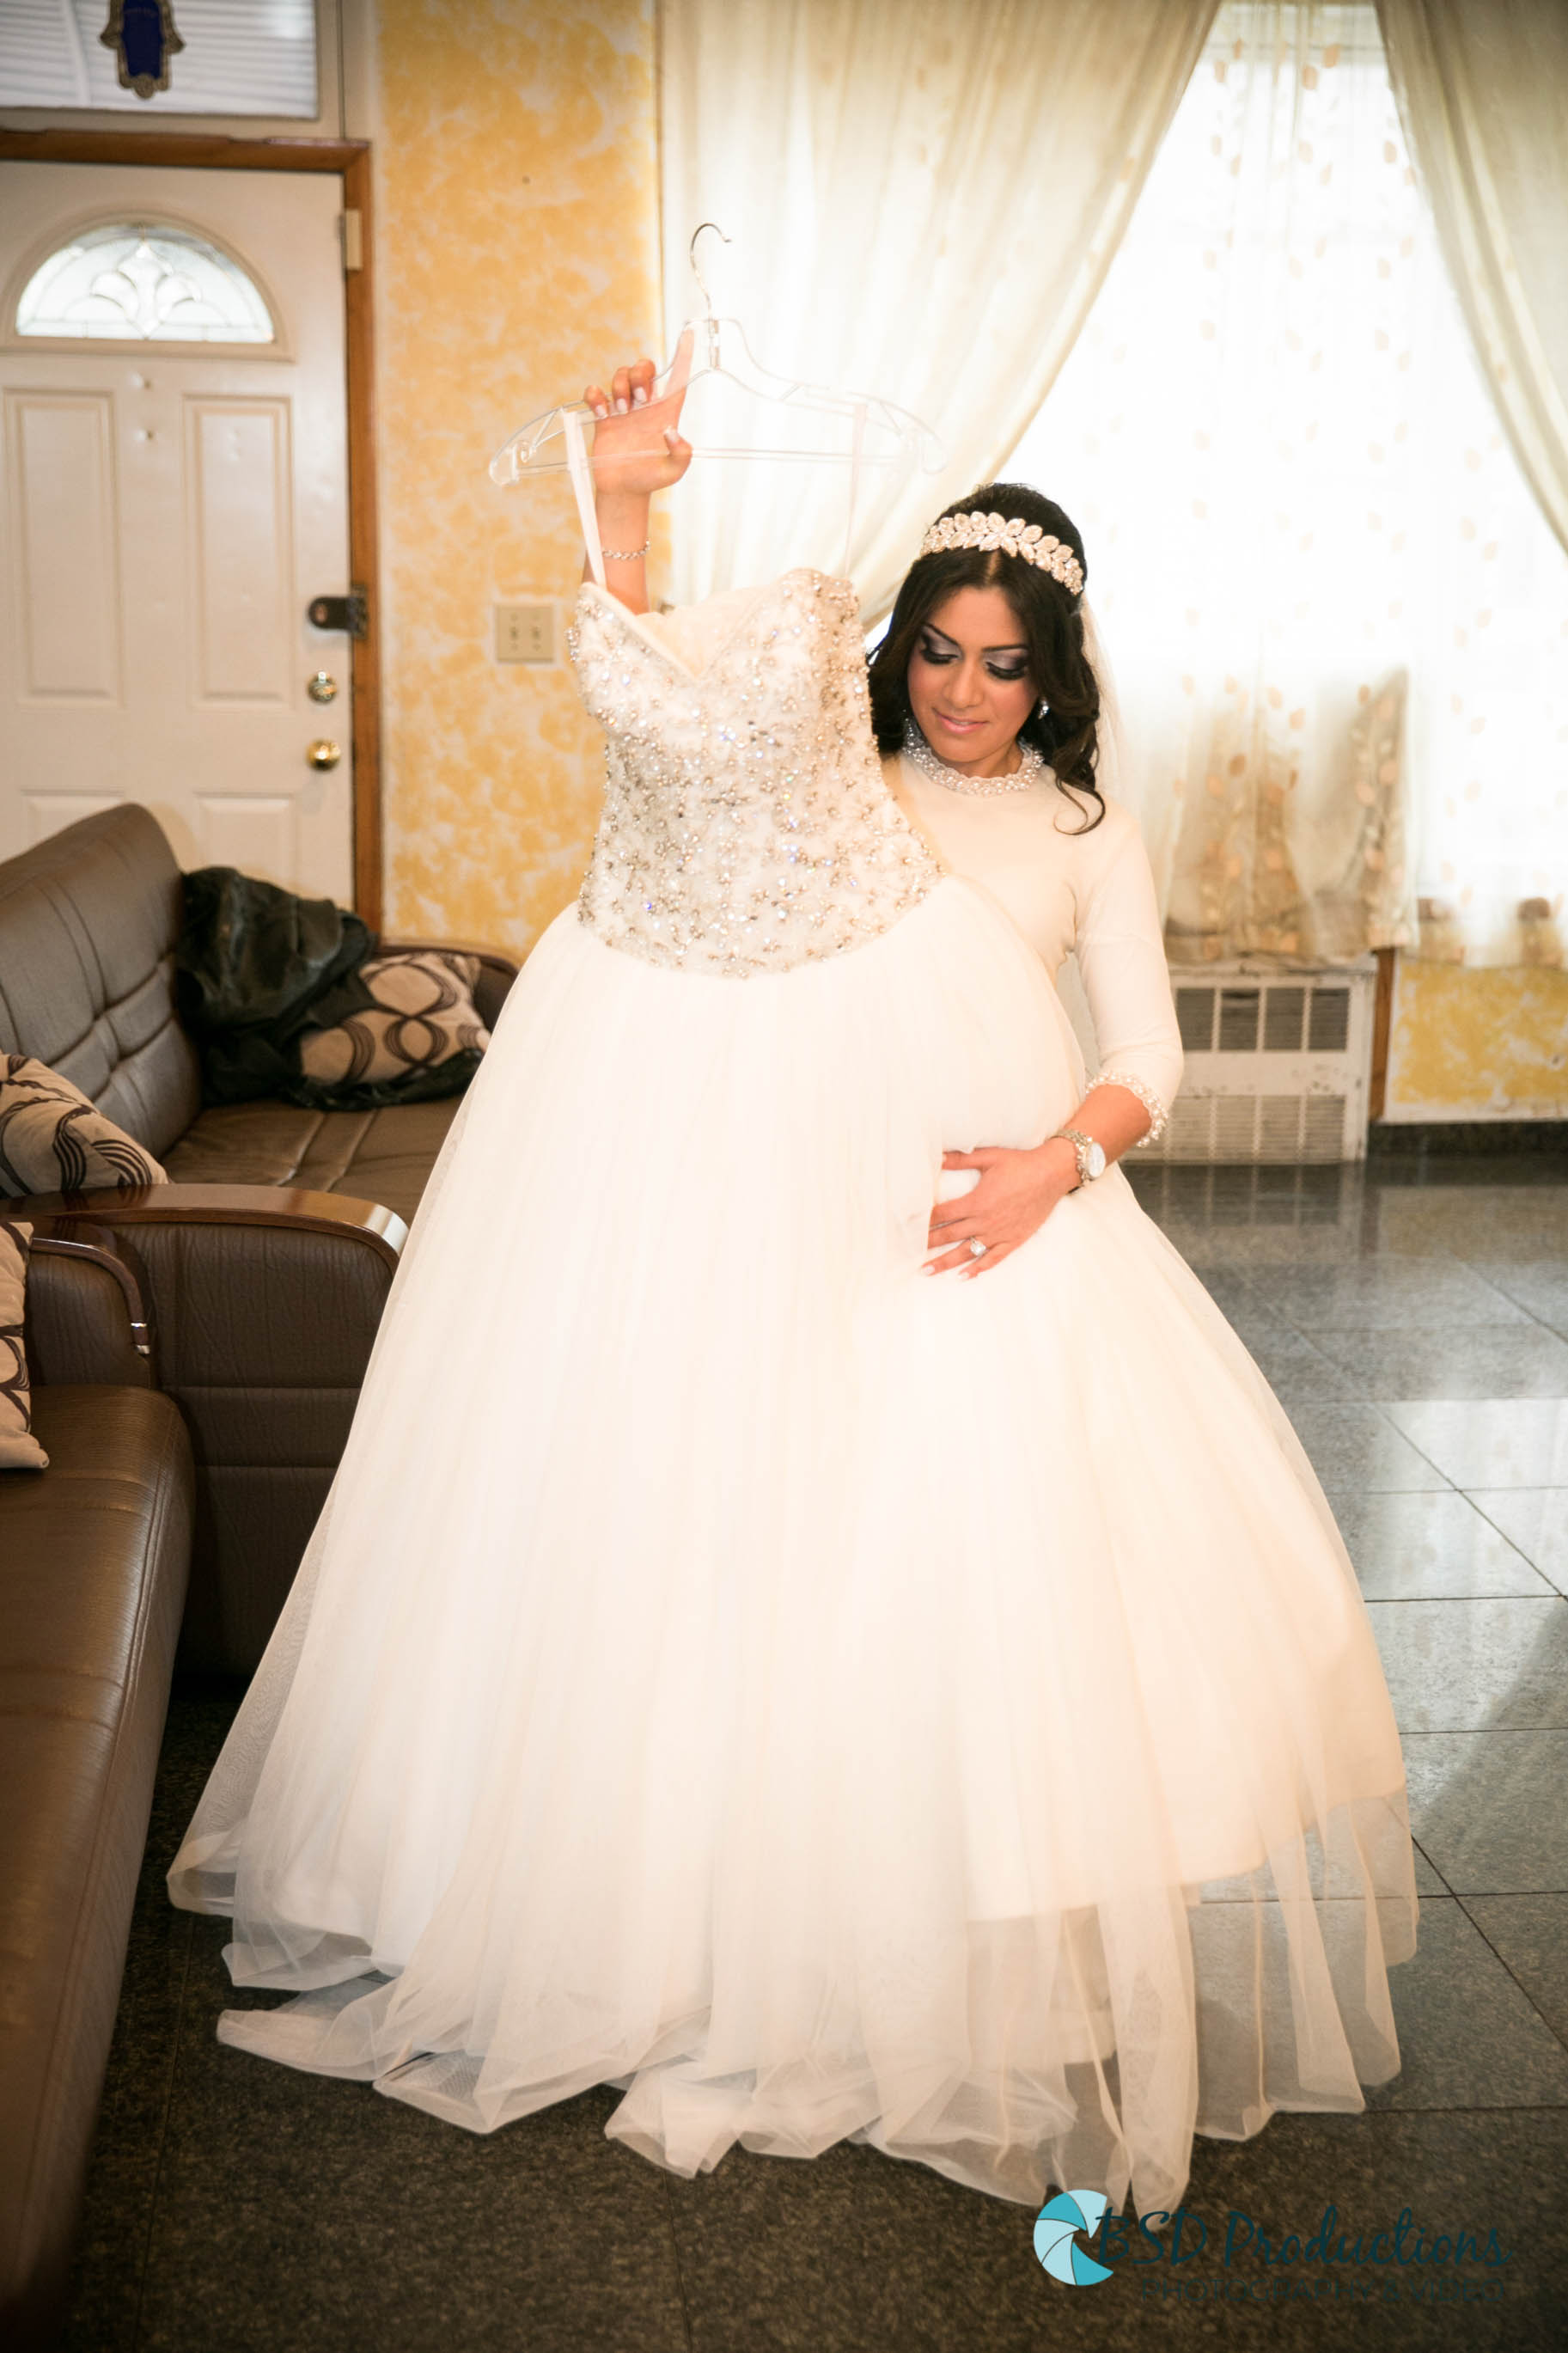 UH5A8496 Wedding – BSD Productions Photography